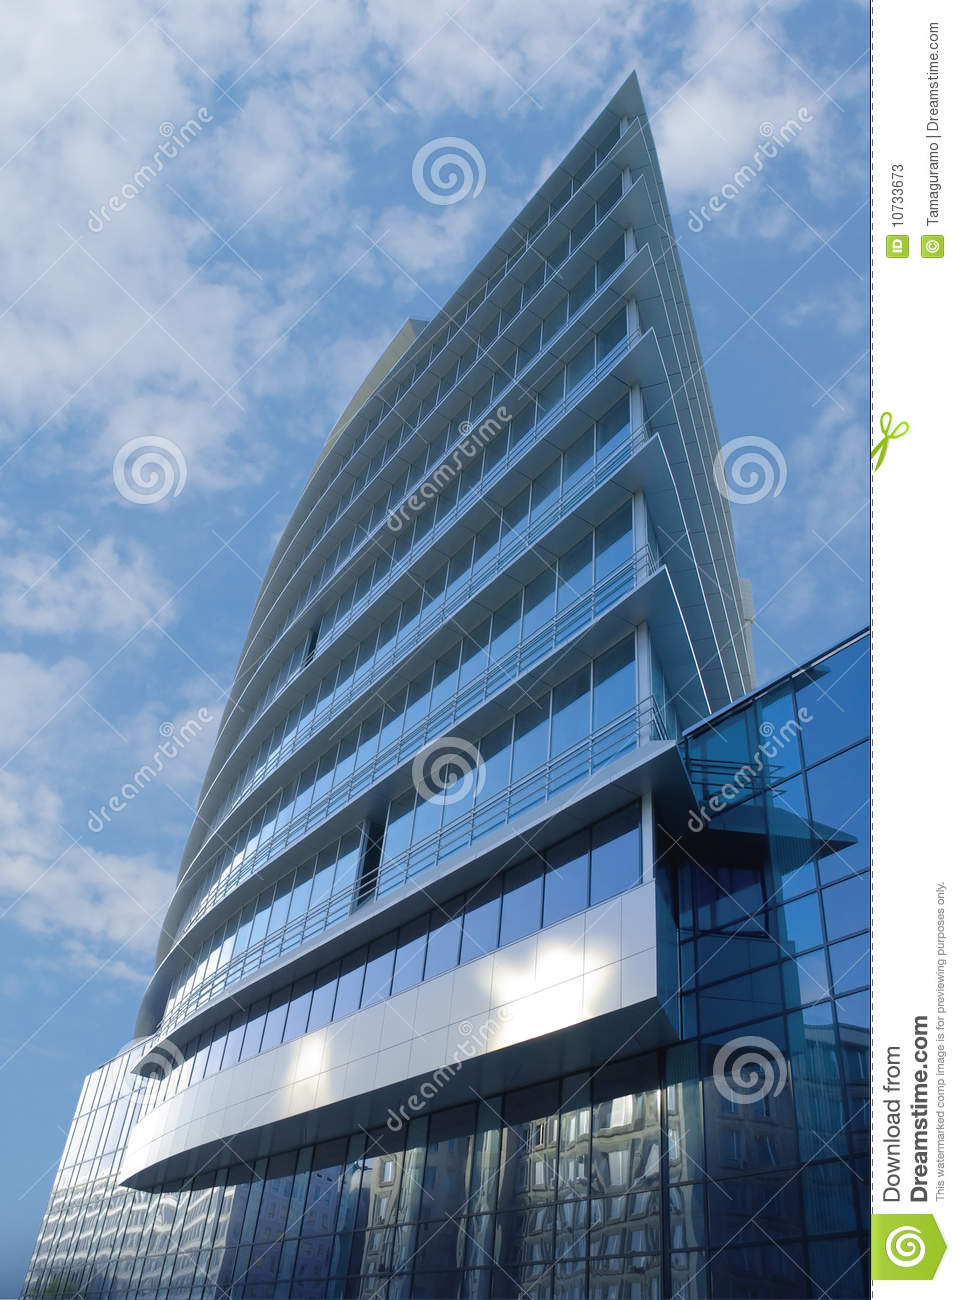 Low Angle View To Light Glass Buildings Of Business Center: Low Angle Stock Photos